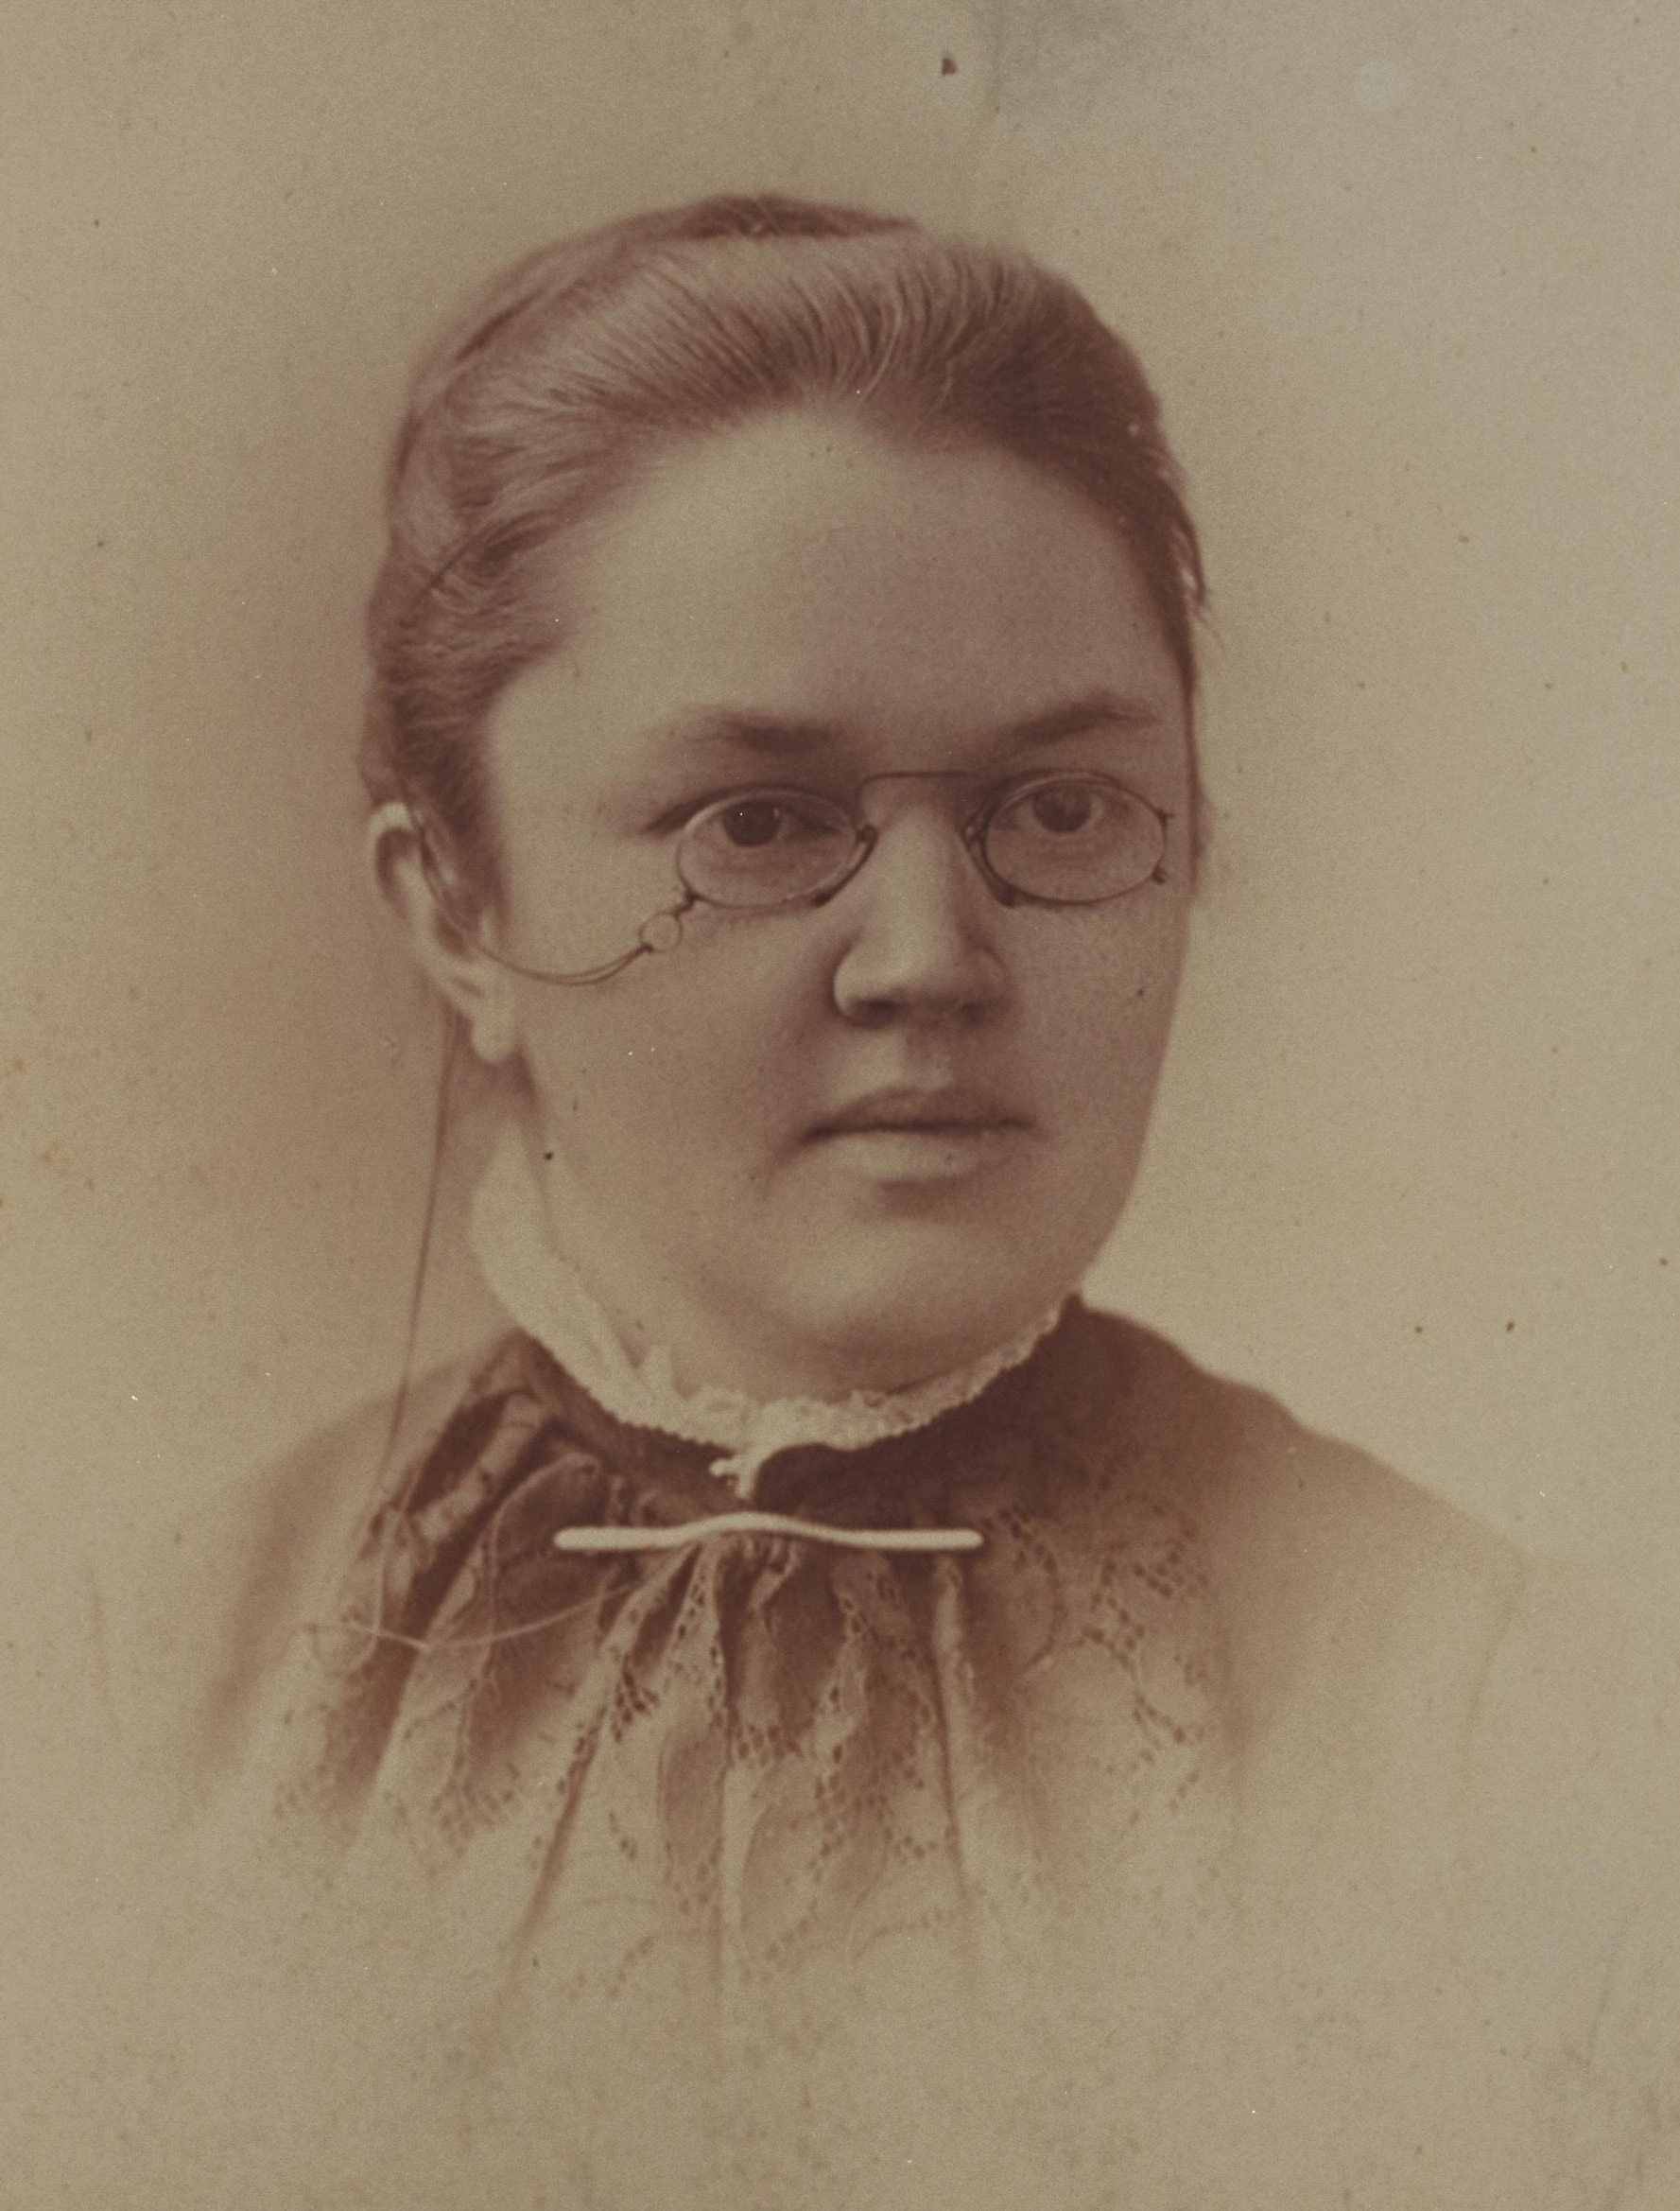 Katharine Lee Bates, photo from Schlesinger Library, RIAS, Harvard University